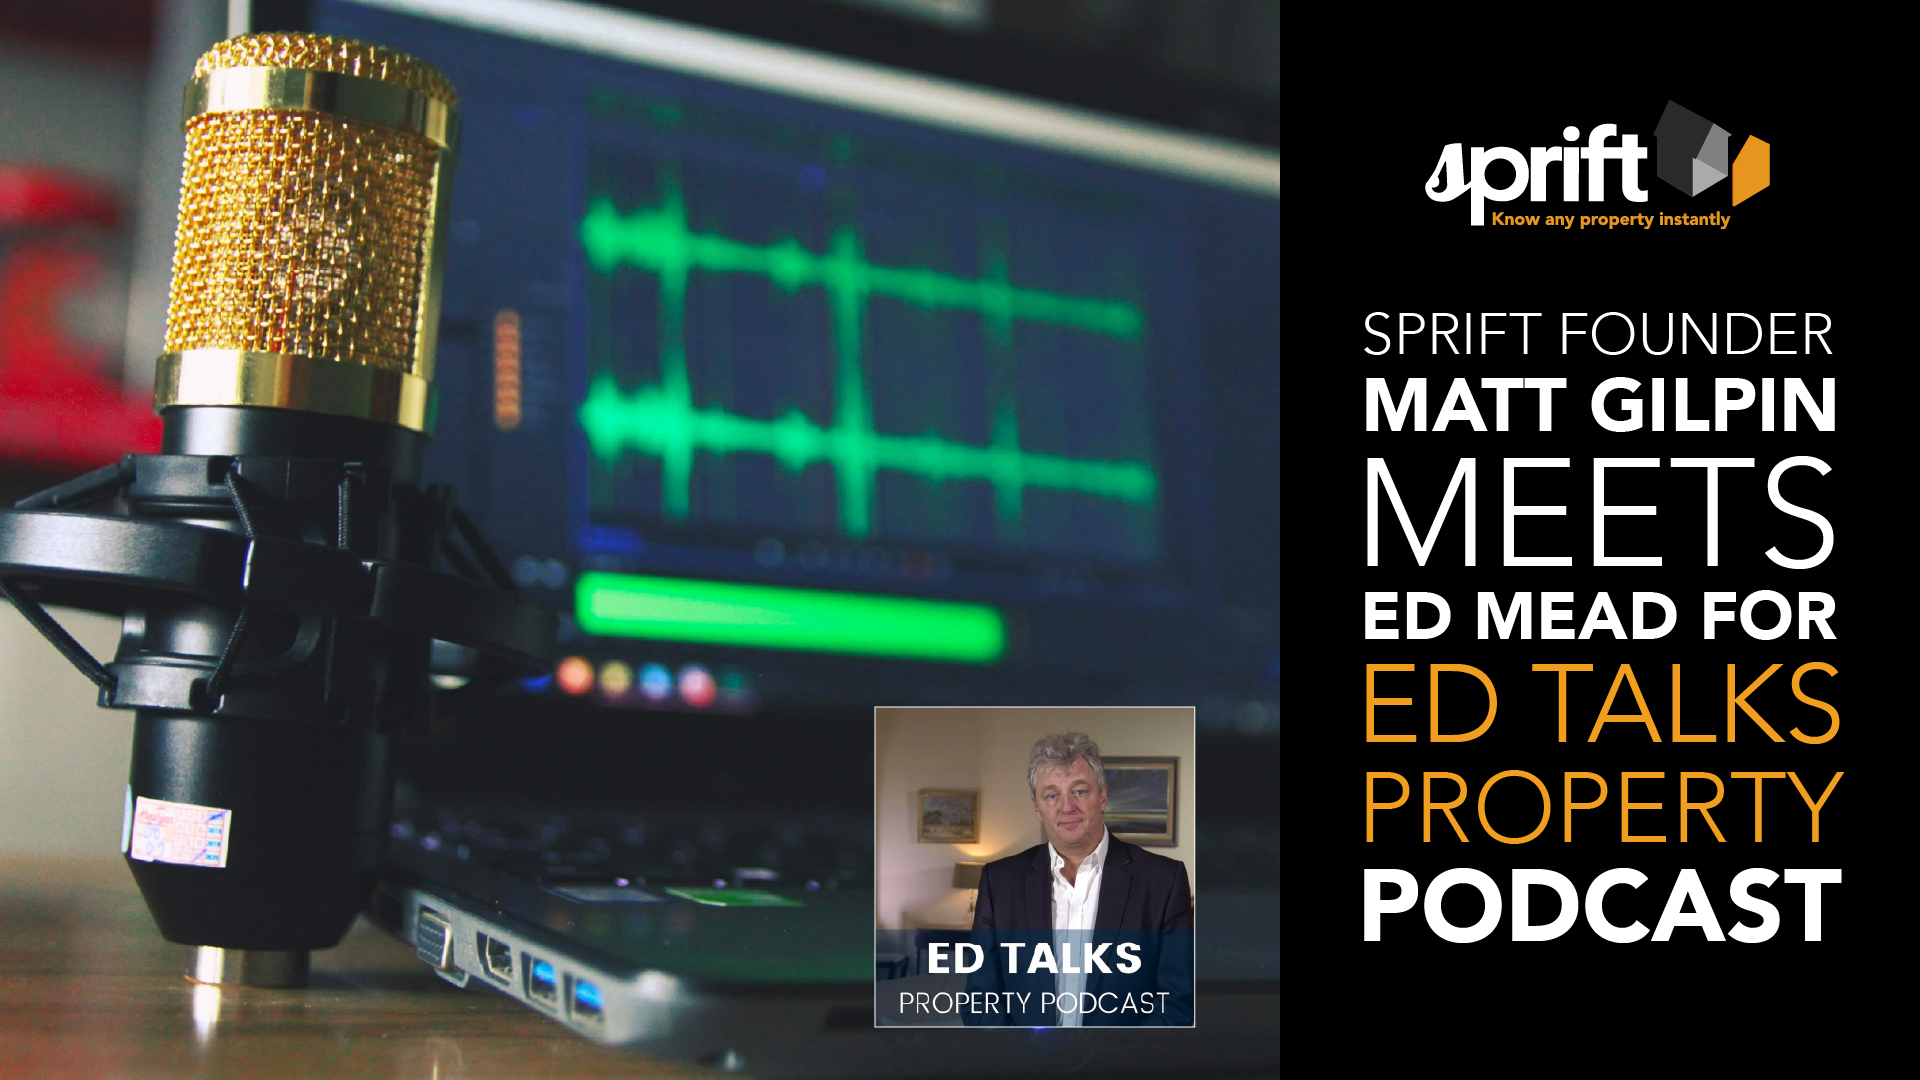 Sprift meets the Ed Mead, talks property data